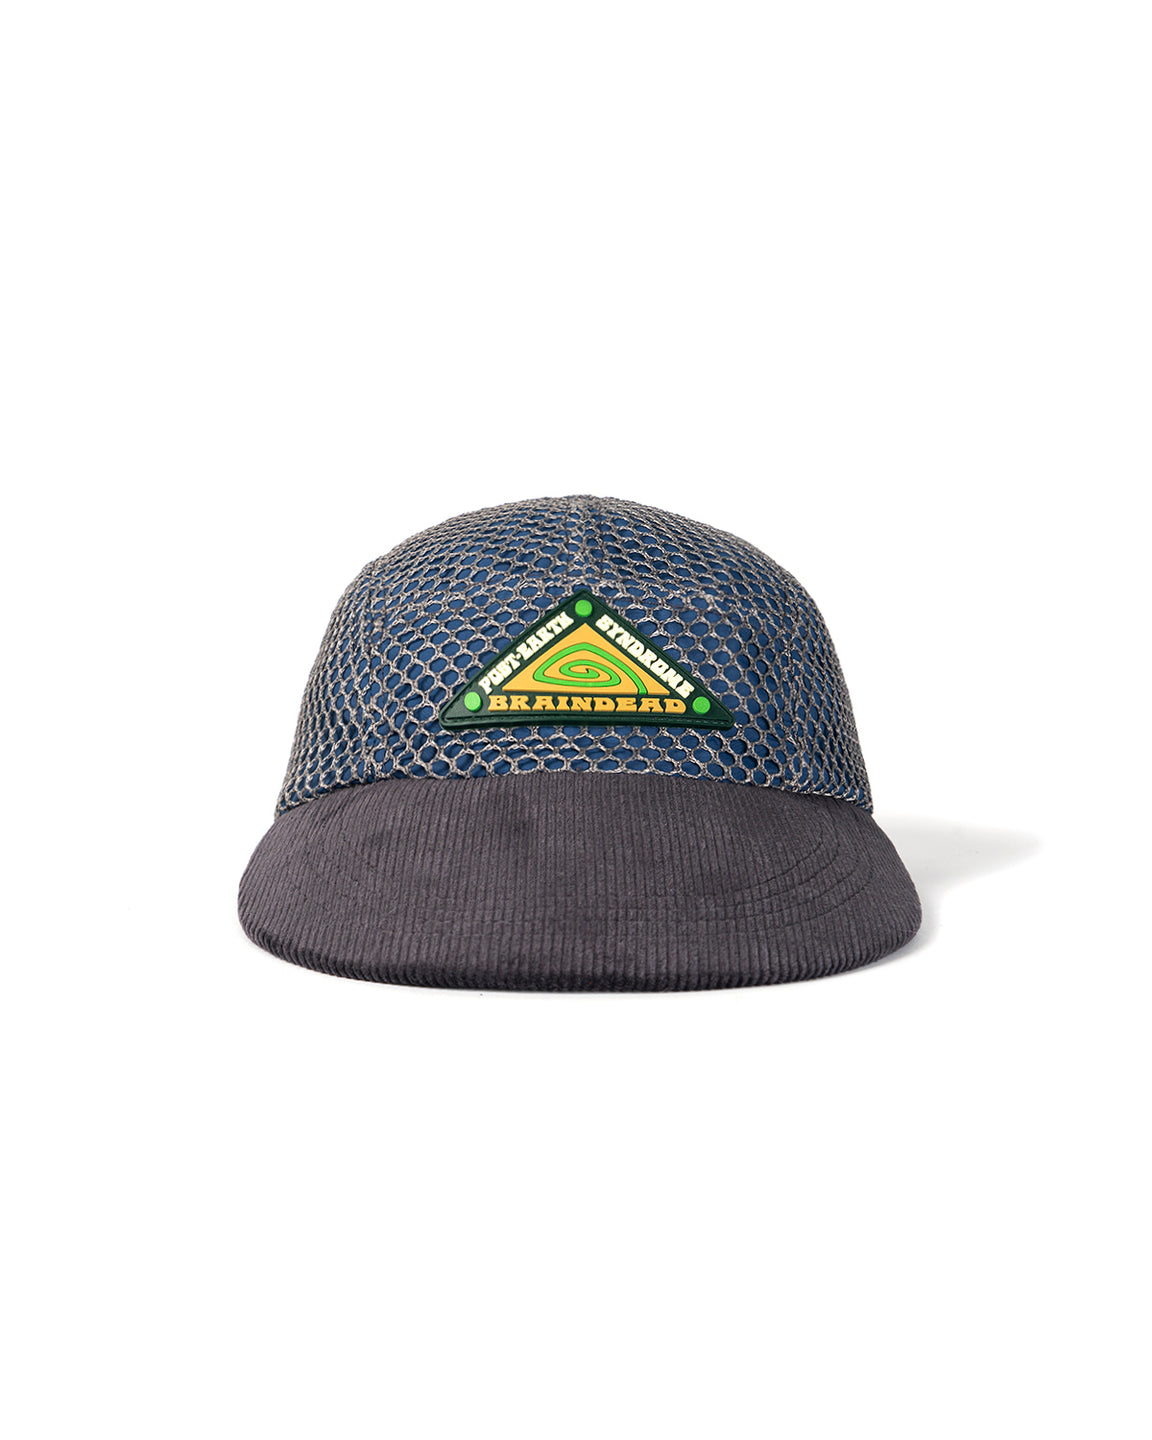 Post Earth Syndrome Fisherman Hat - Charcoal Multi